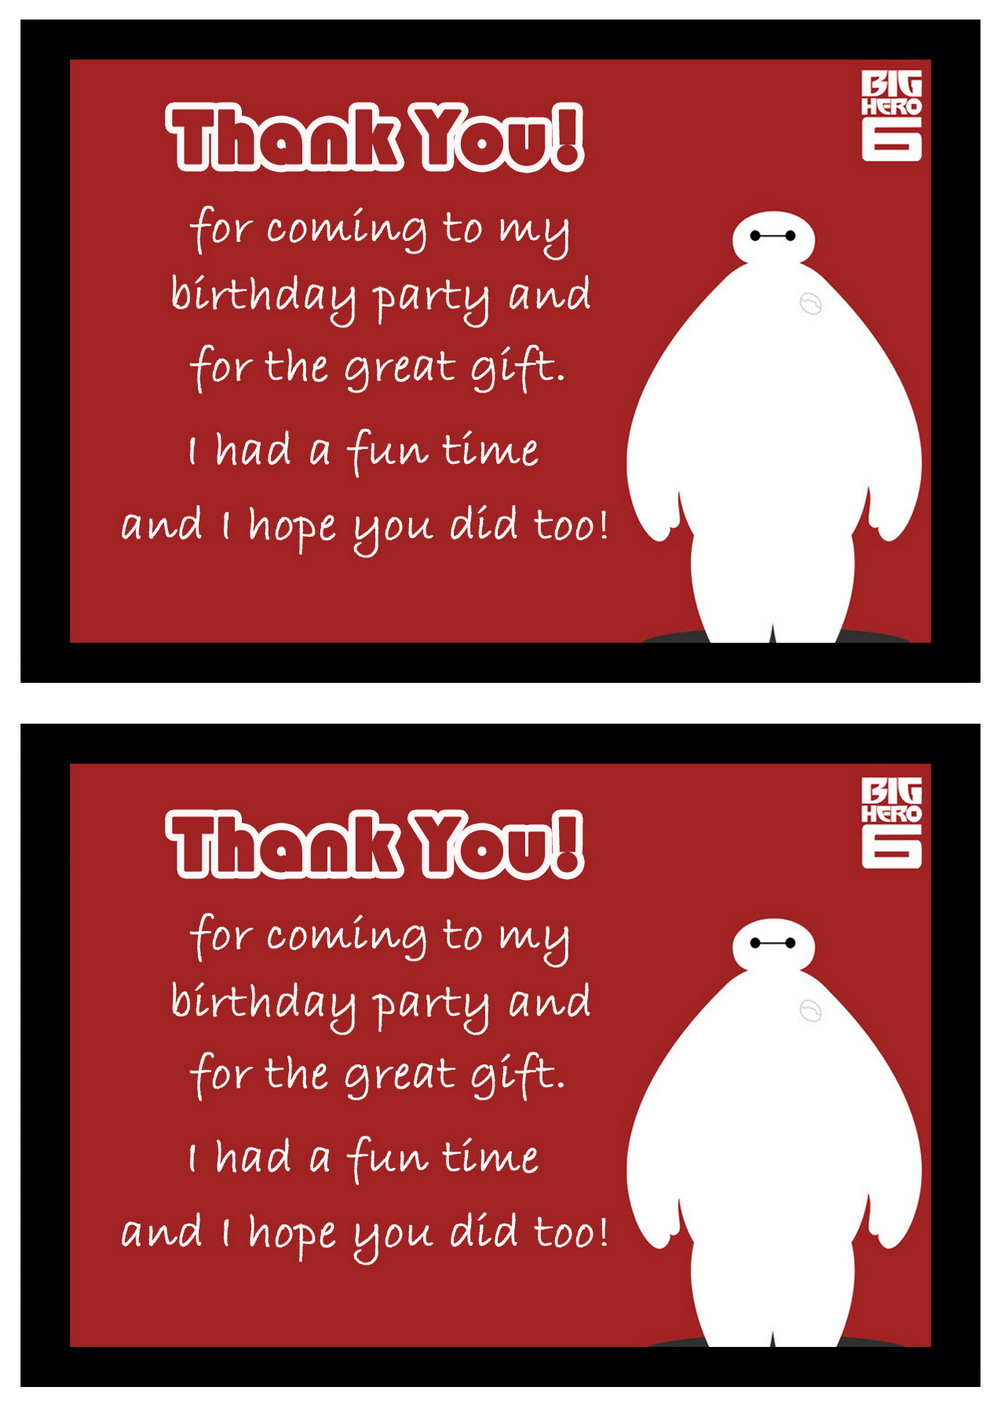 big hero 6 thank you cards